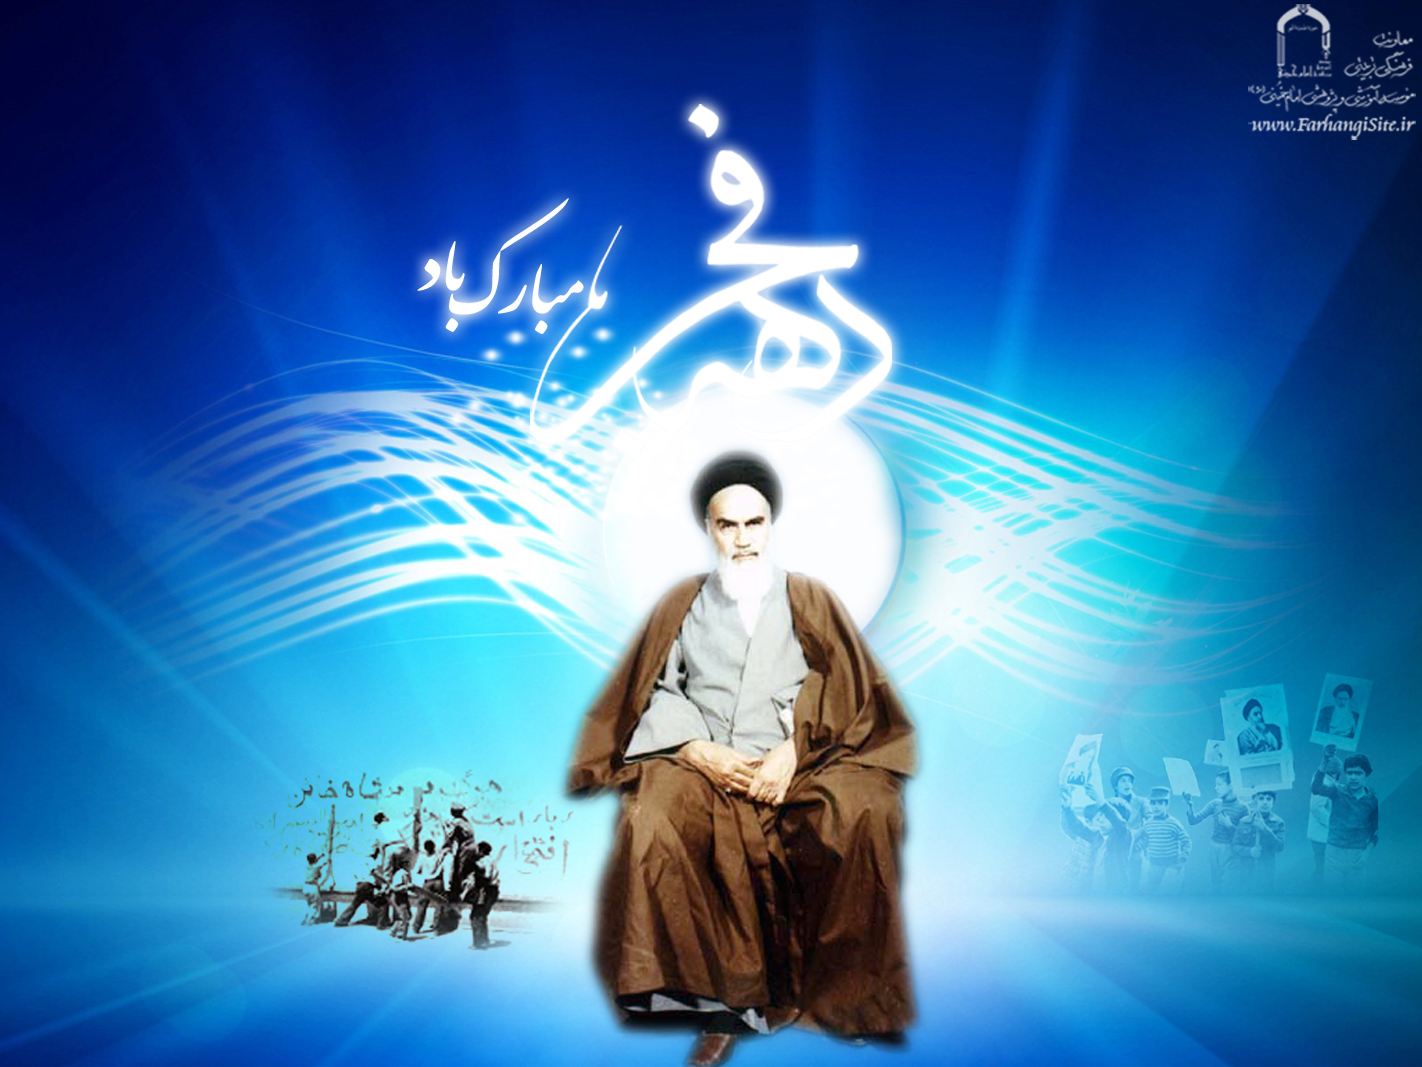 http://farhangisite.ir/sites/farhangisite.ir/files/images/Bahman/Background/Fajr-4.jpg